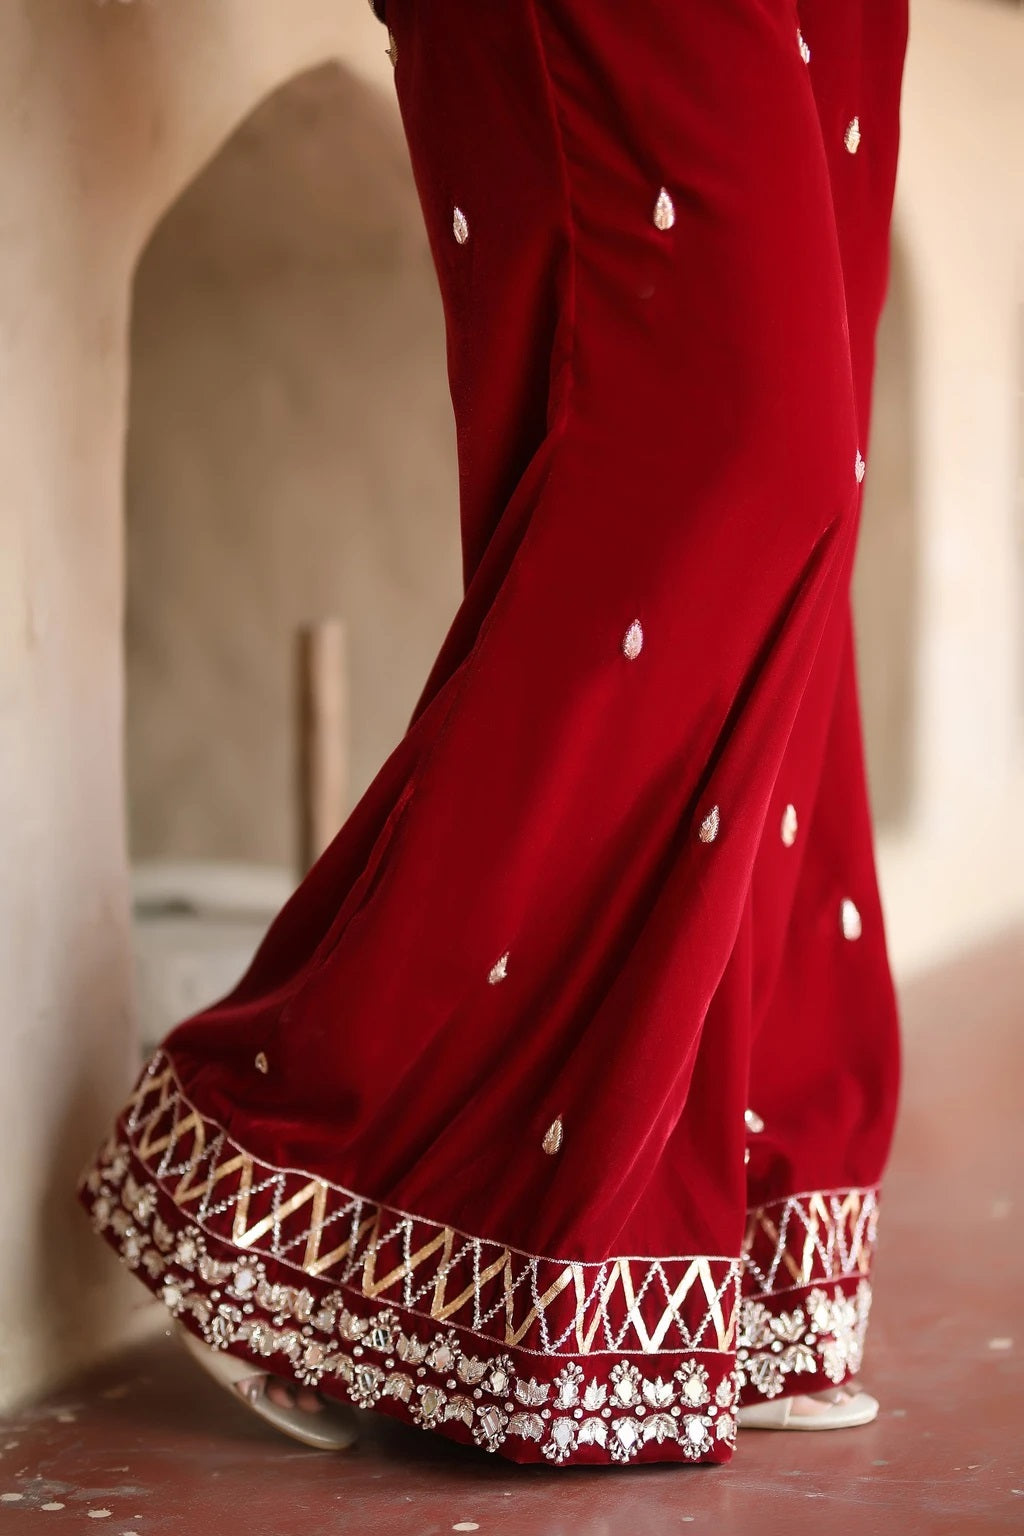 Scarlet Passion Trousers - Henna Mehndi